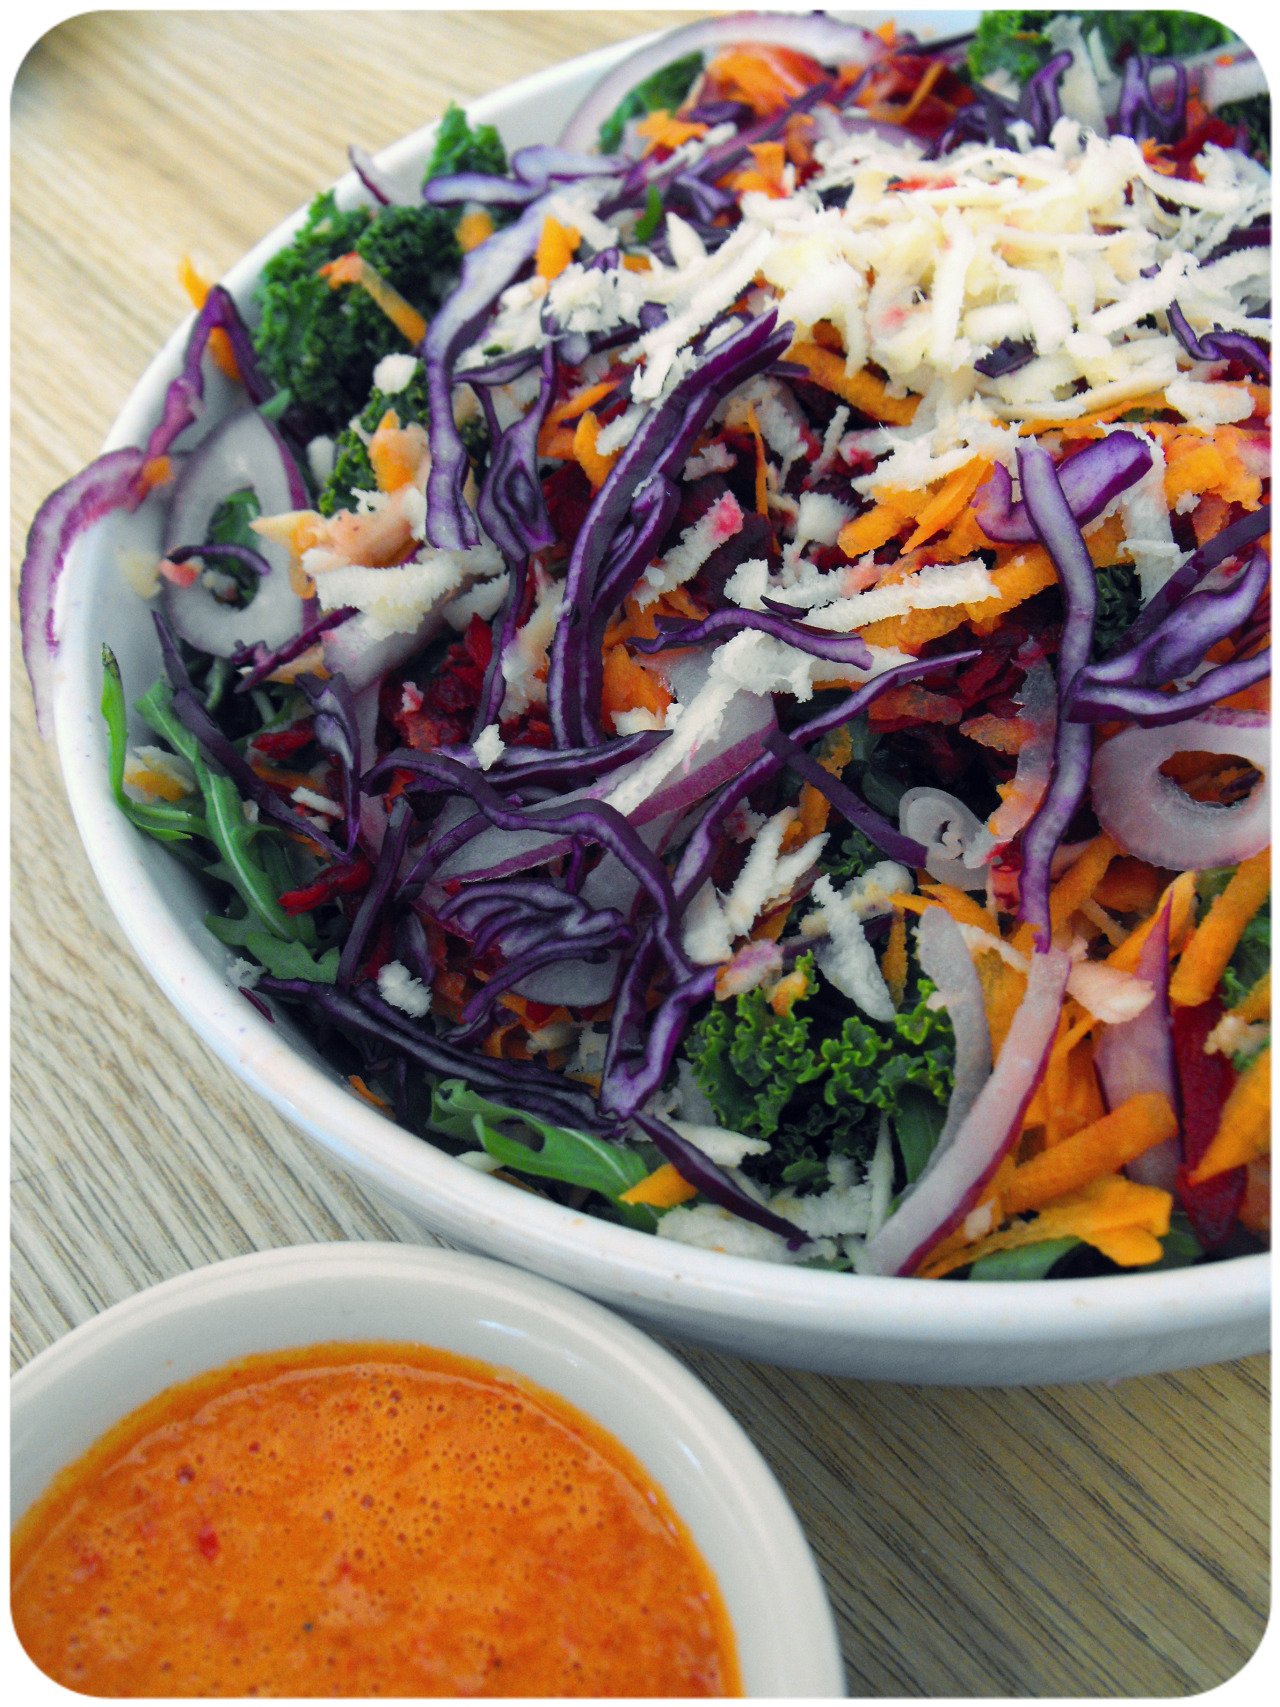 findvegan:  Kale rainbow salad with orange red pepper dressing.